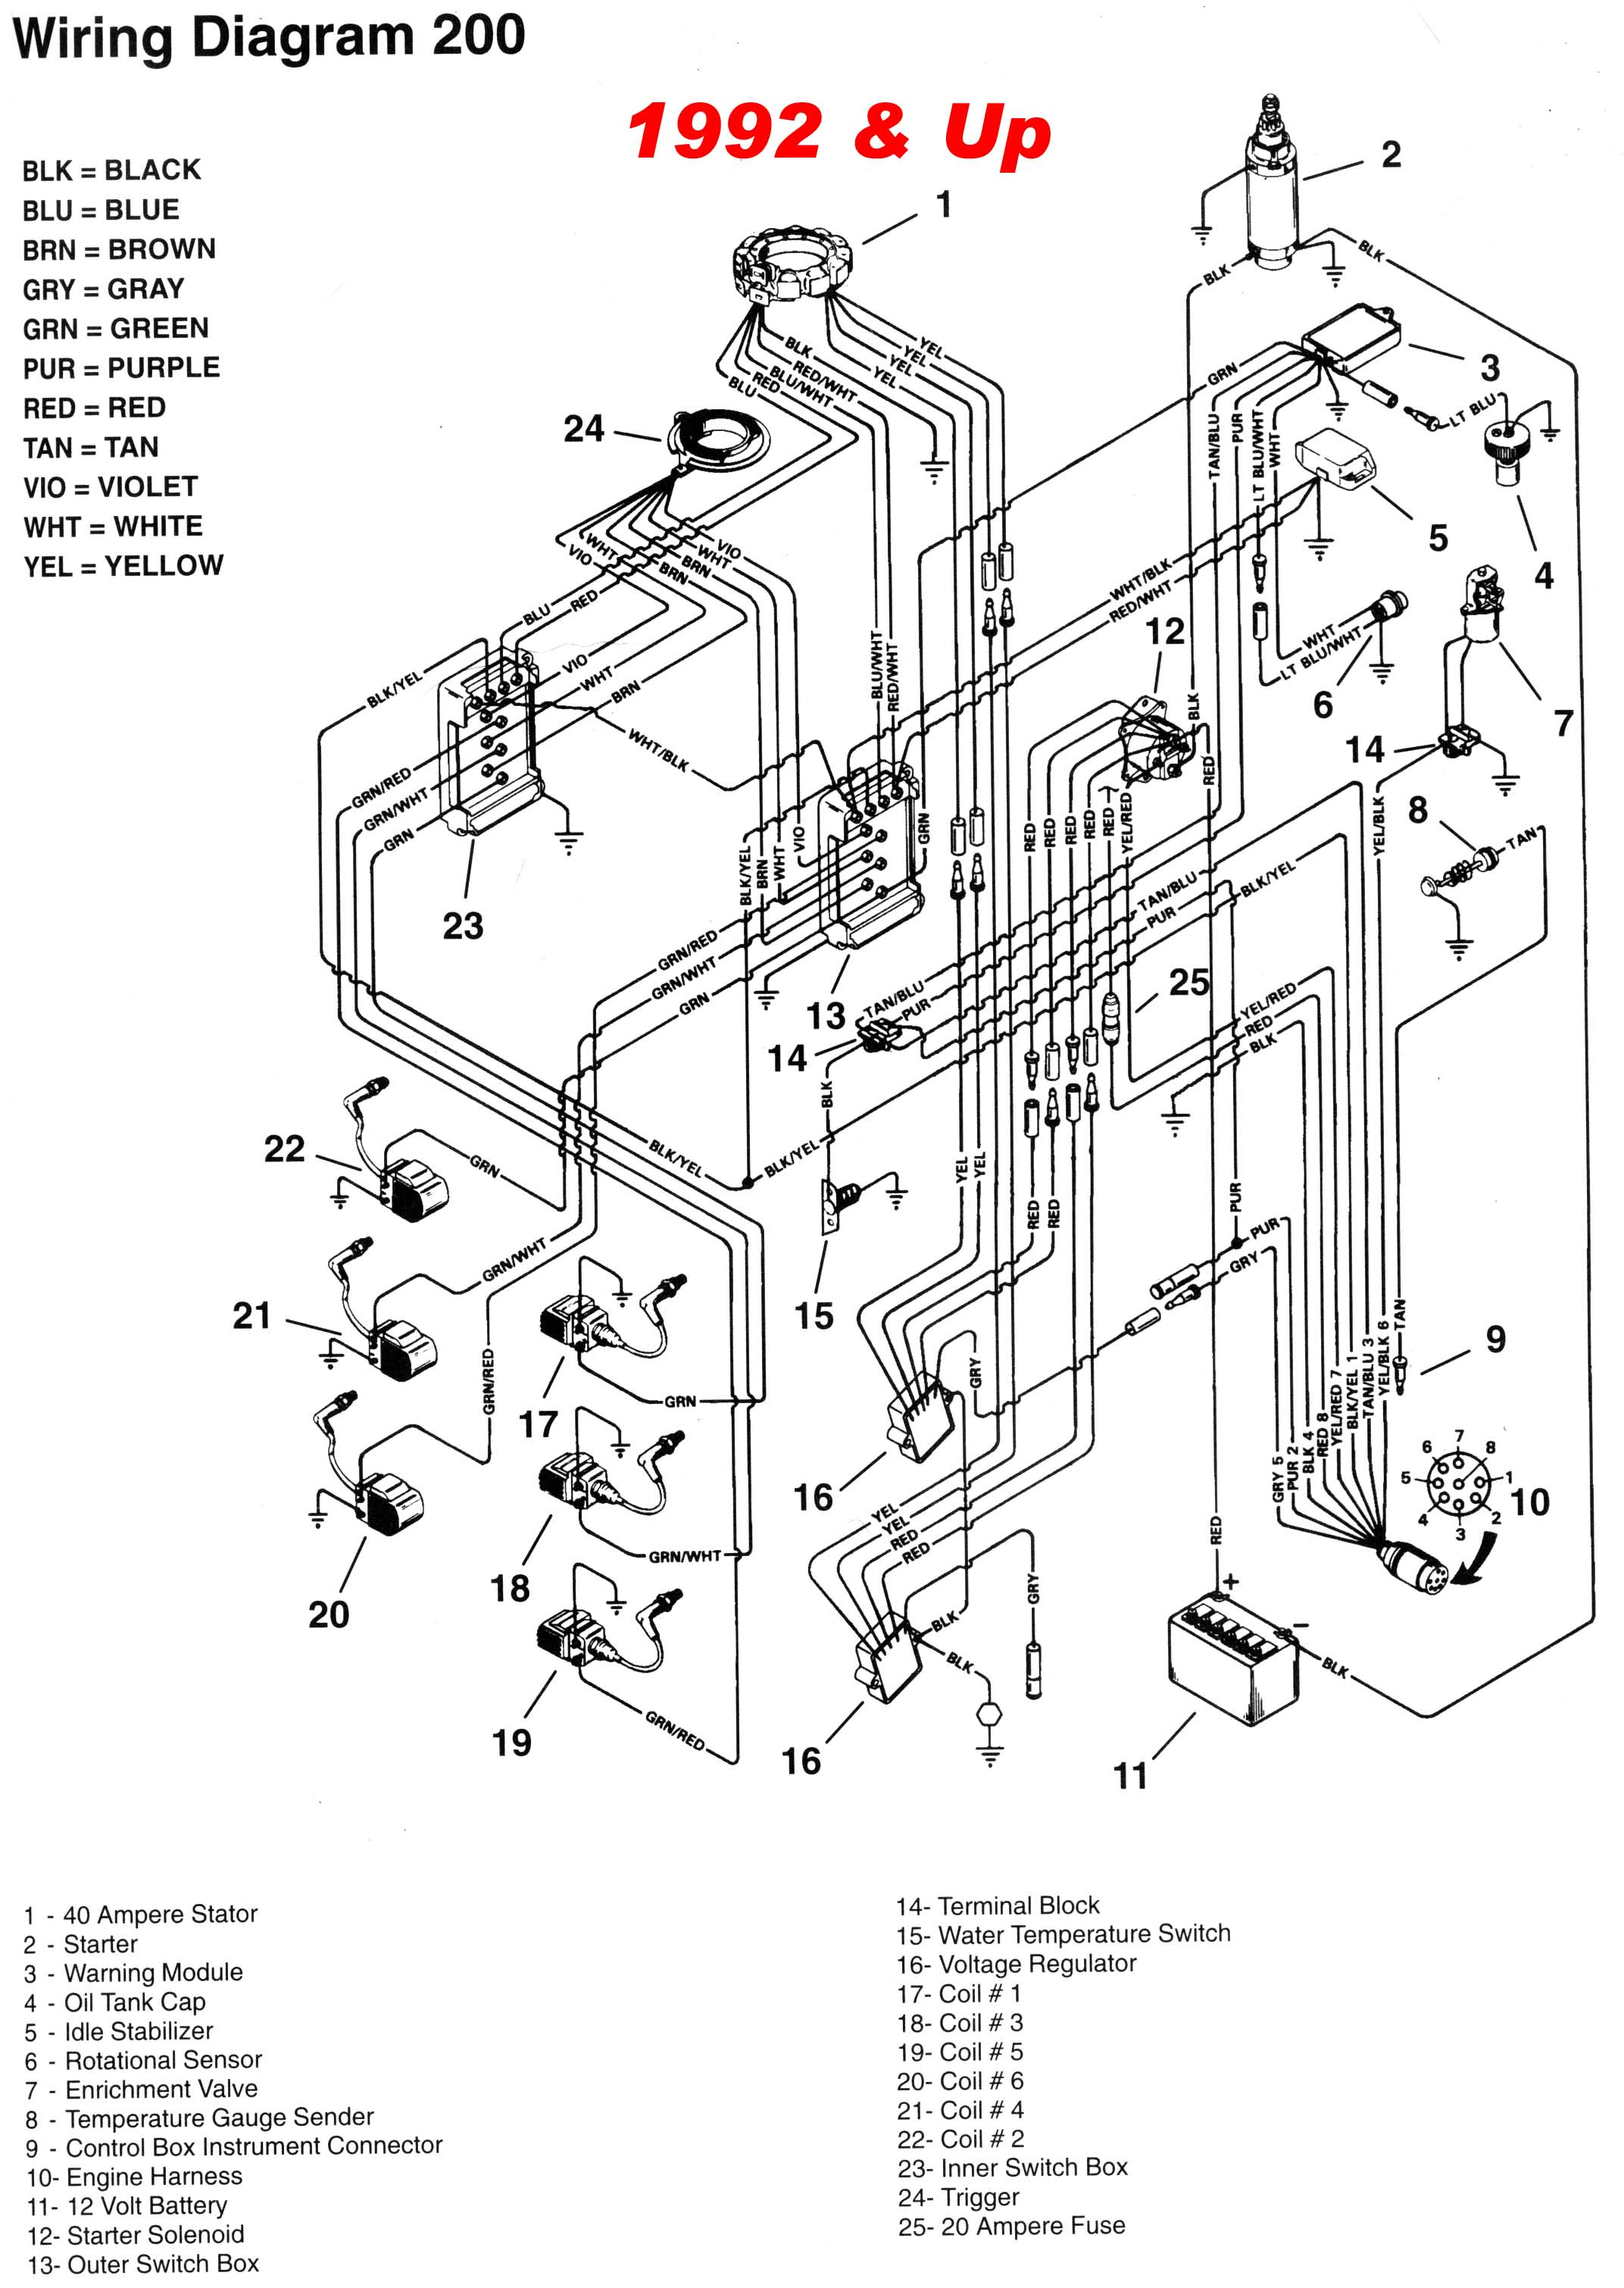 mercury_92up_200_wiring wiring diagram 2001 60 hp mercury outboard readingrat net yamaha ttr 225 wiring diagram at webbmarketing.co